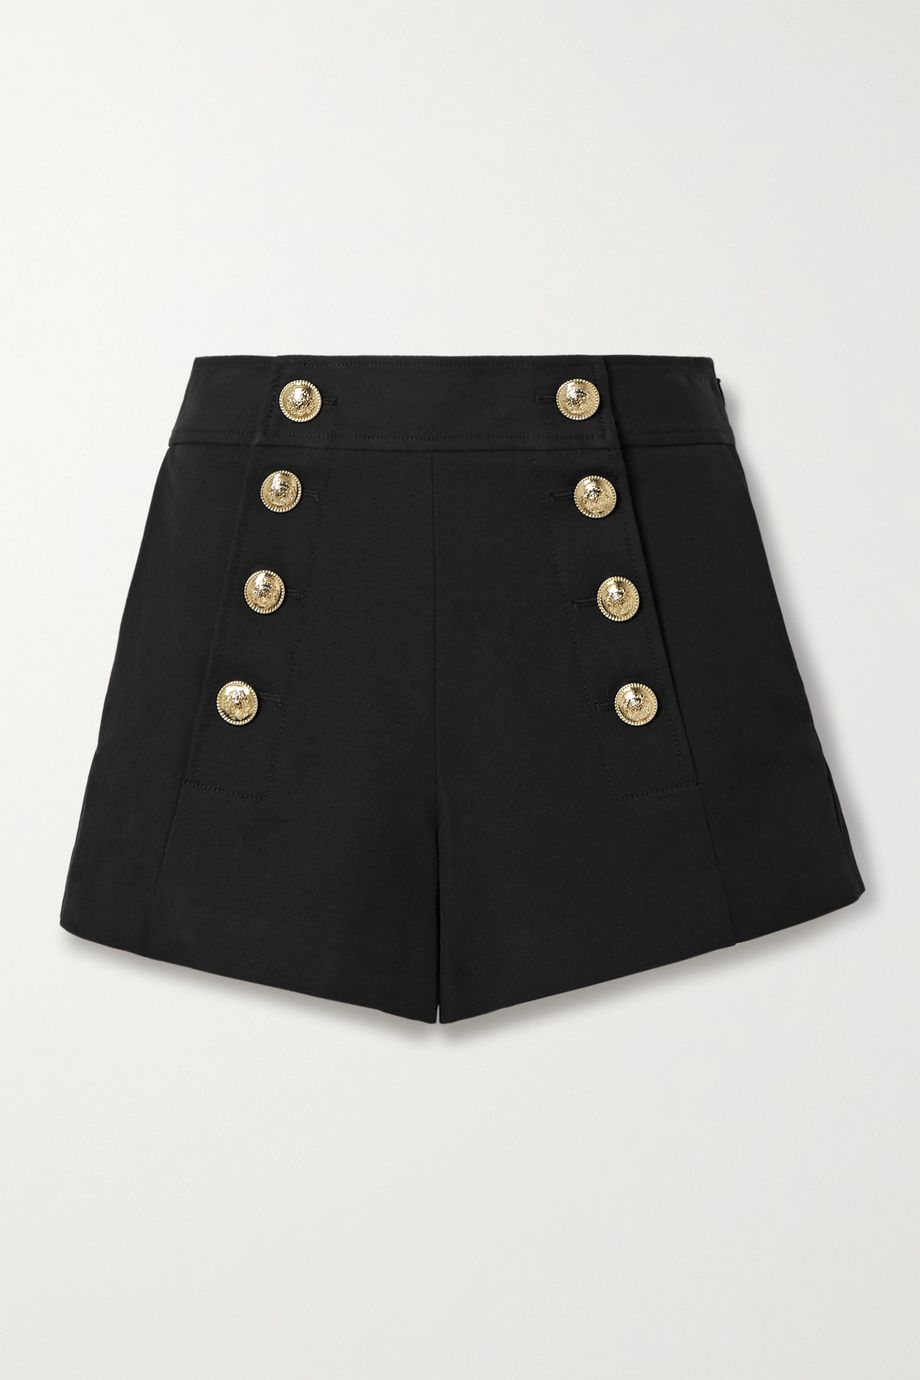 Derek Lam 10 Crosby Robertson button-embellished cotton-blend shorts